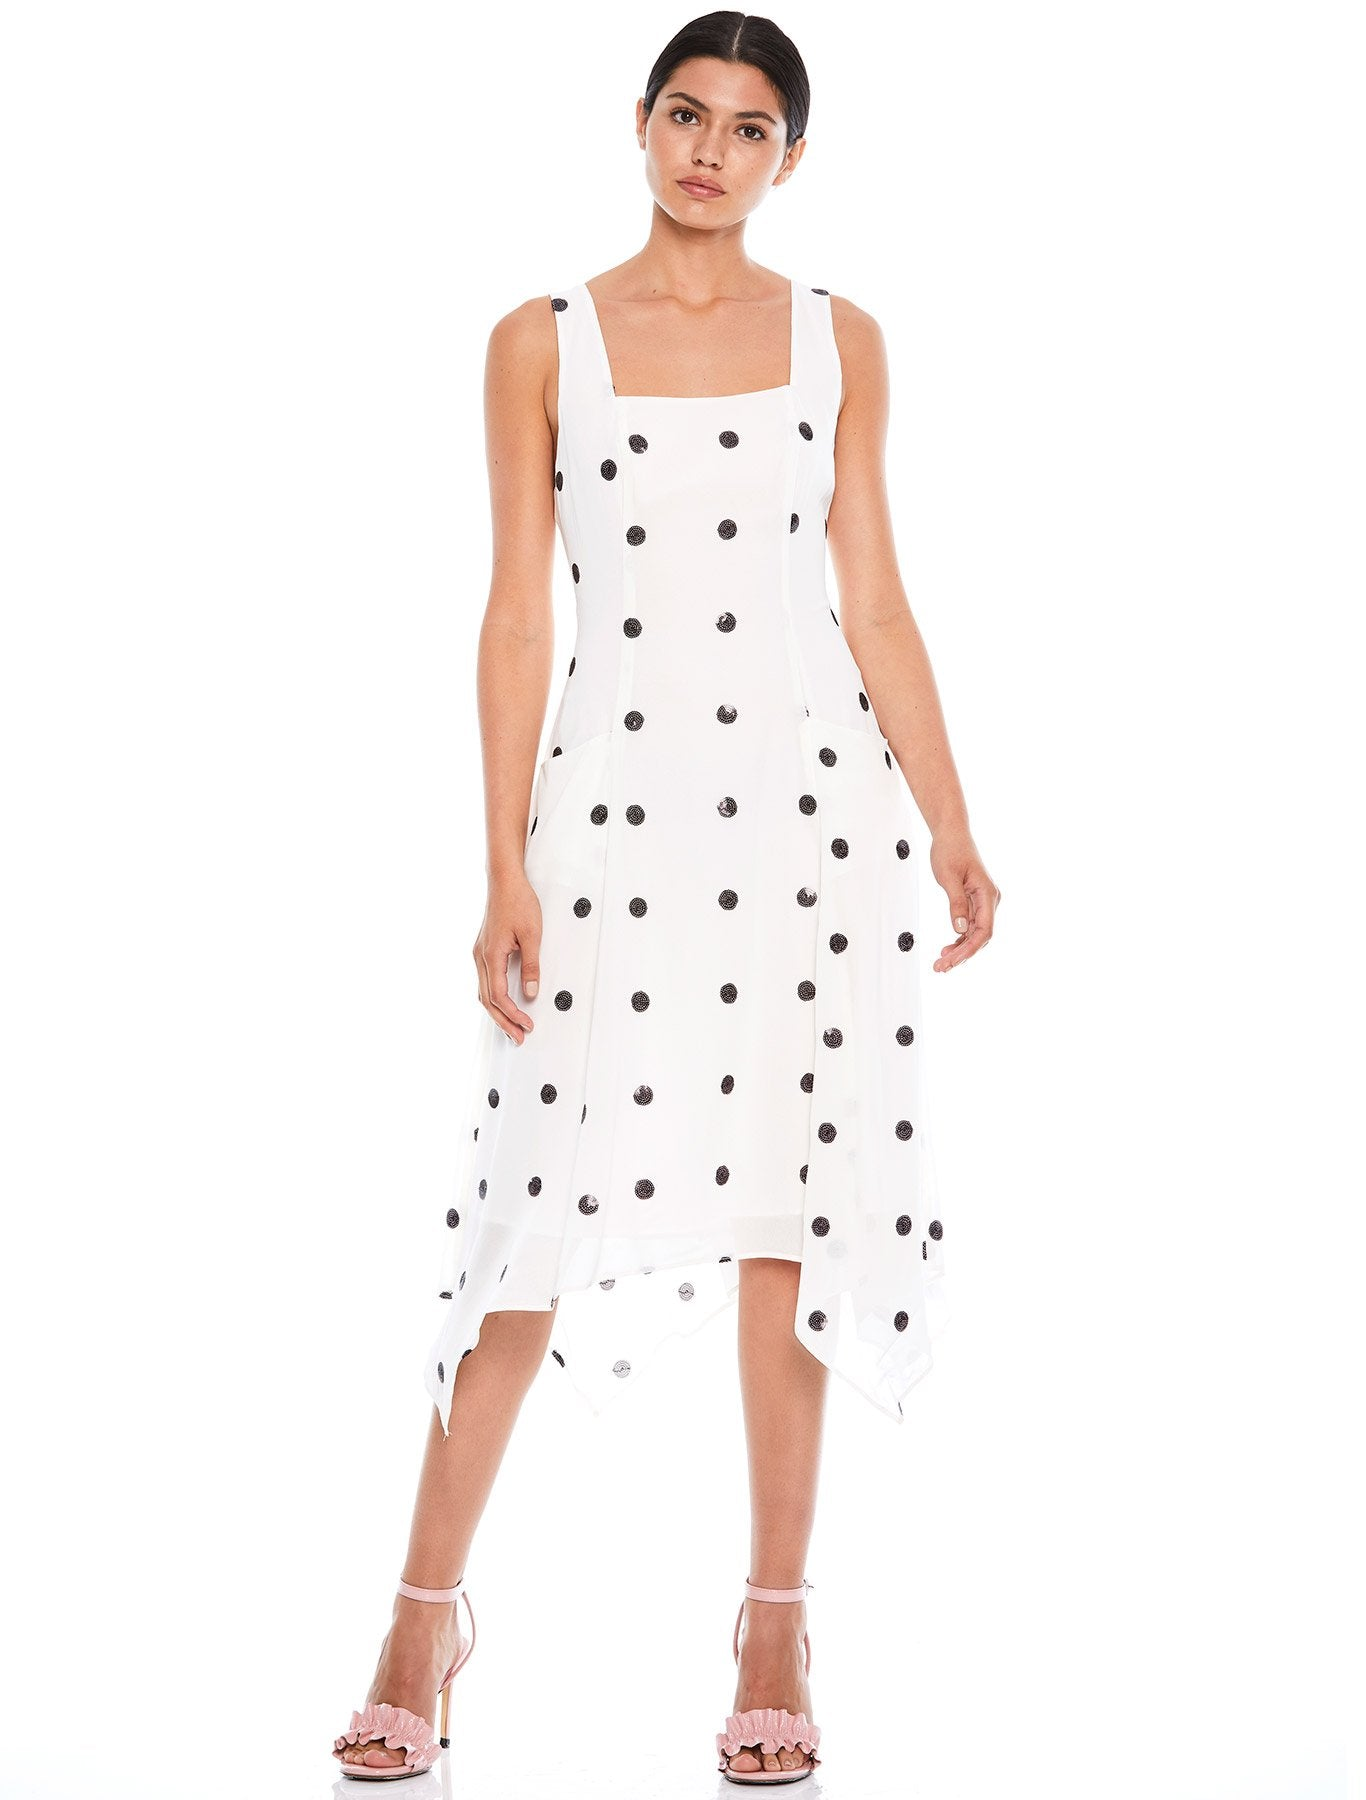 FORGET ME NOT MIDI DRESS